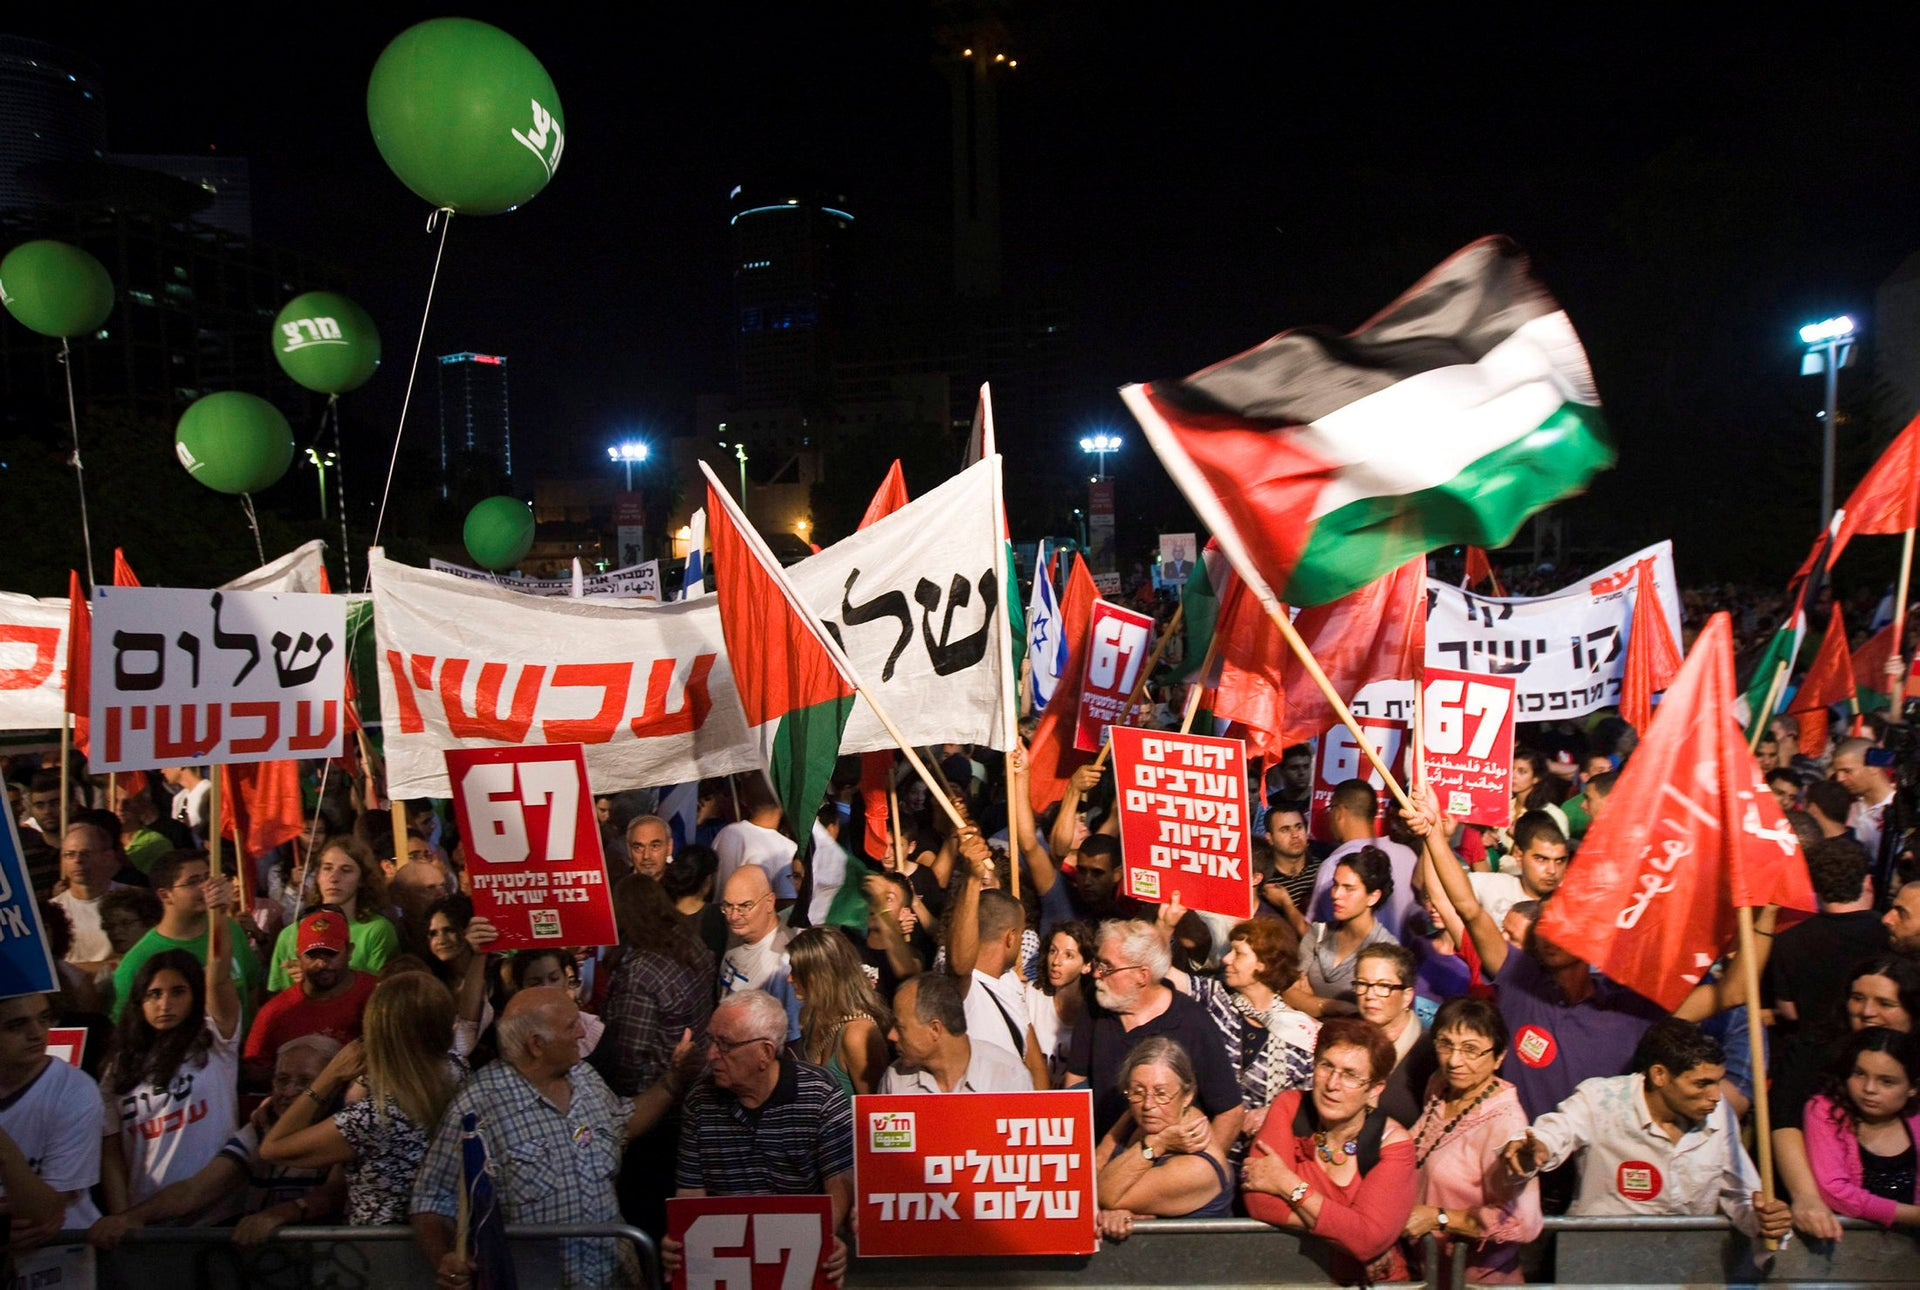 Thousands of left-wing Israelis take part in a rally in support of  a Palestinian state based on the 1967 borders in Tel Aviv June 4, 2011